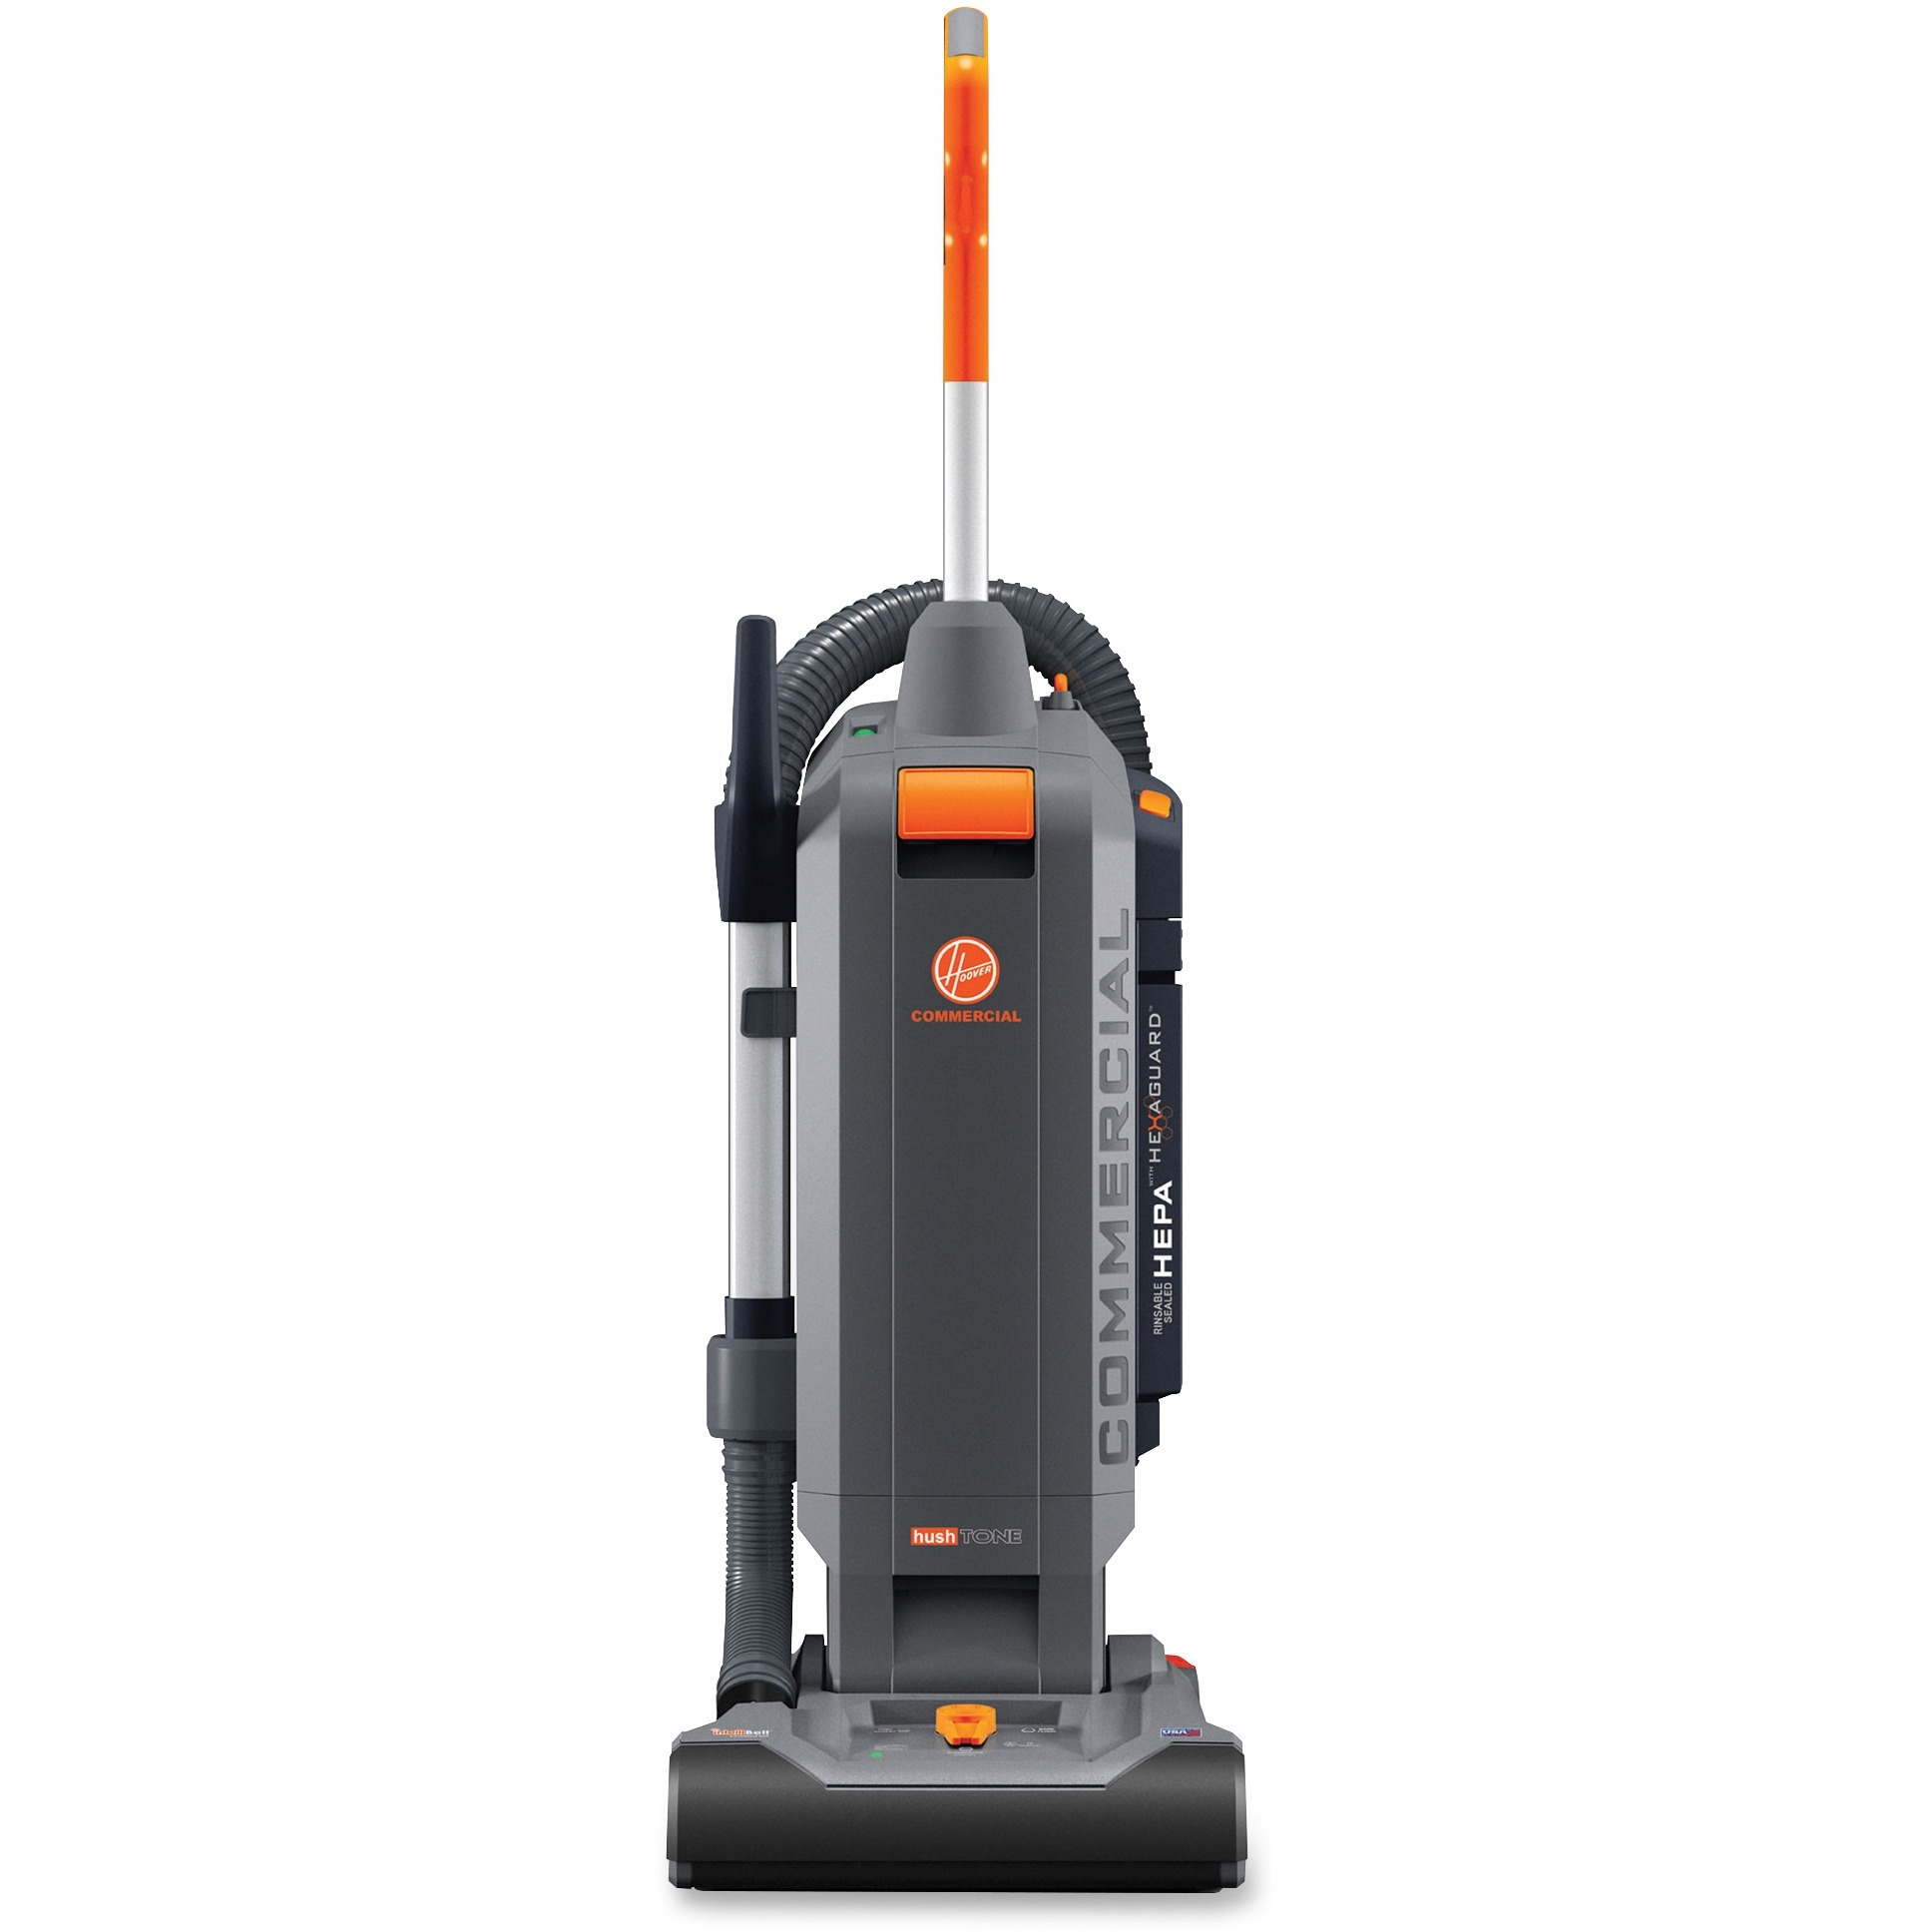 Hoover HushTone 13Plus Upright Vacuum, Gray